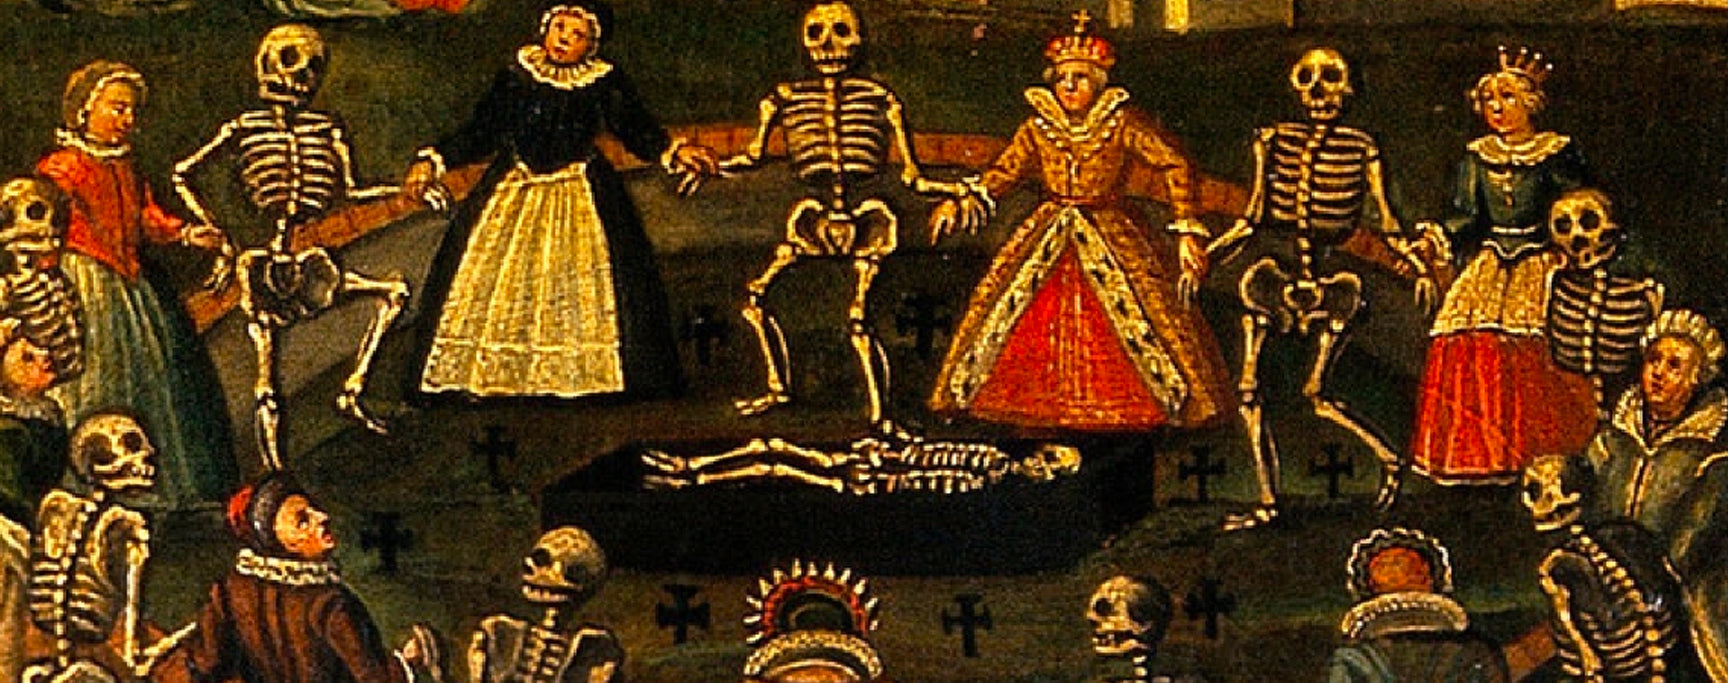 Dance Macabre Painting